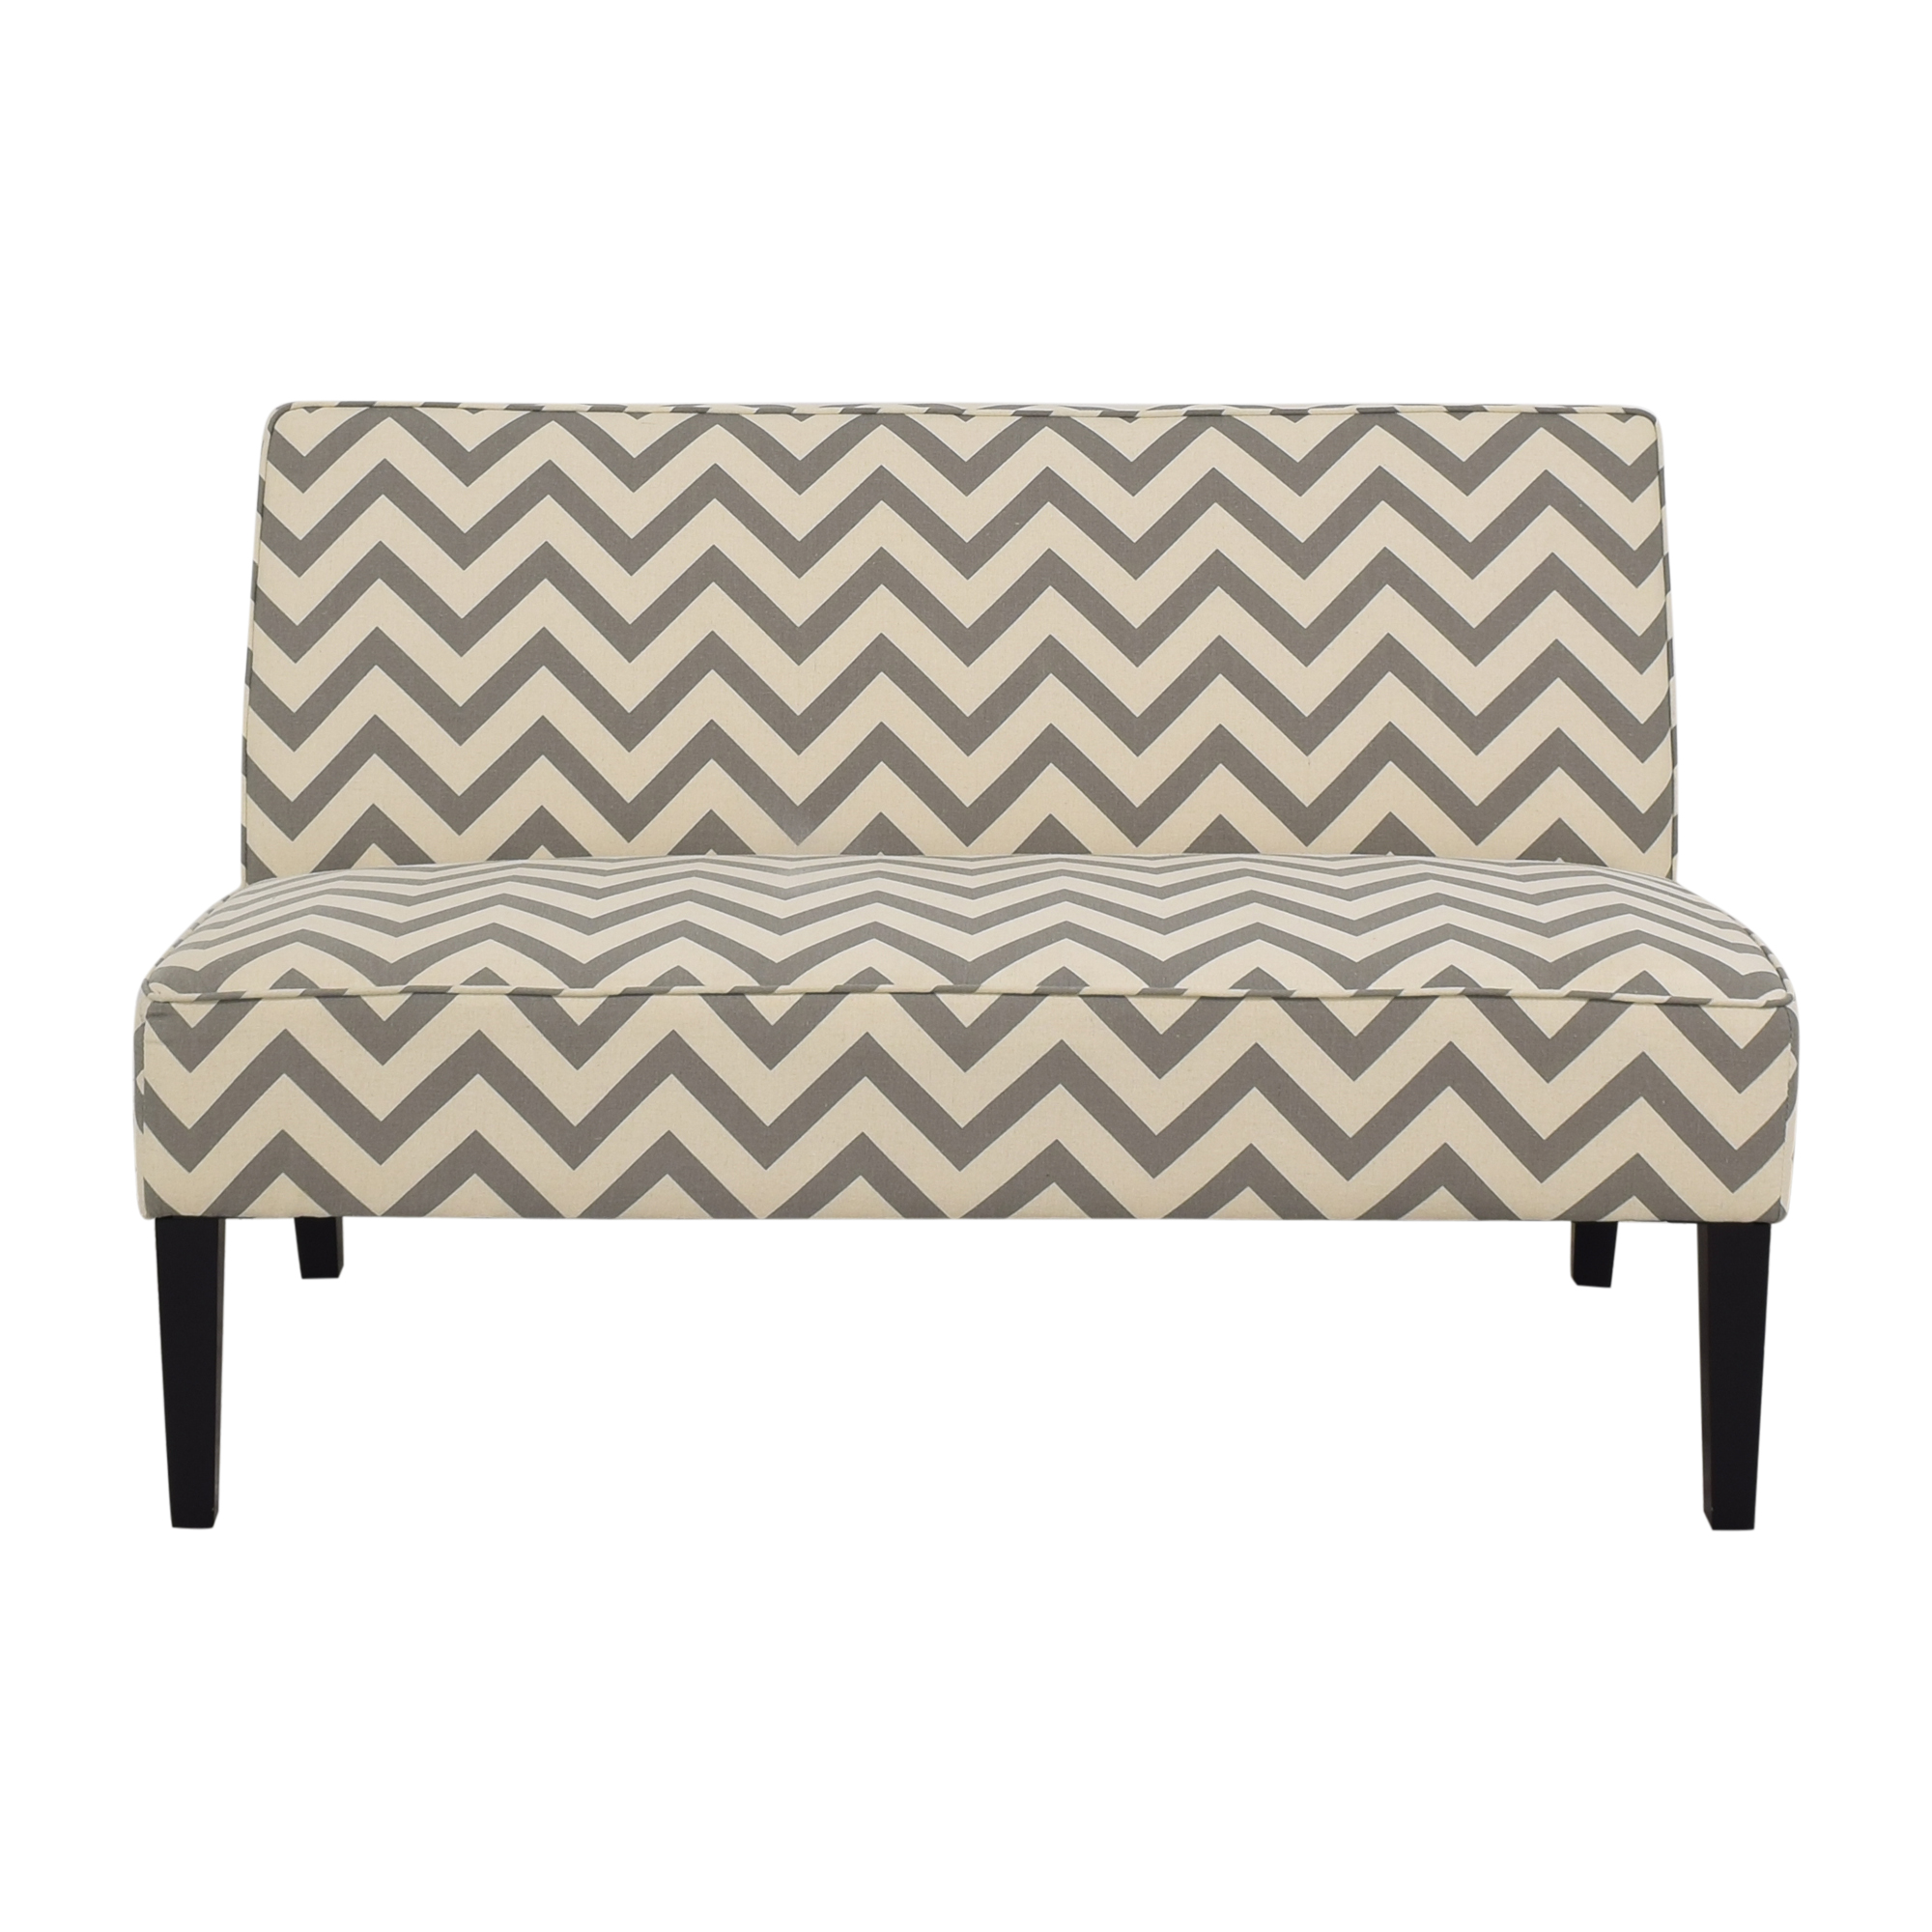 buy Noble House Upholstered Bench Noble House